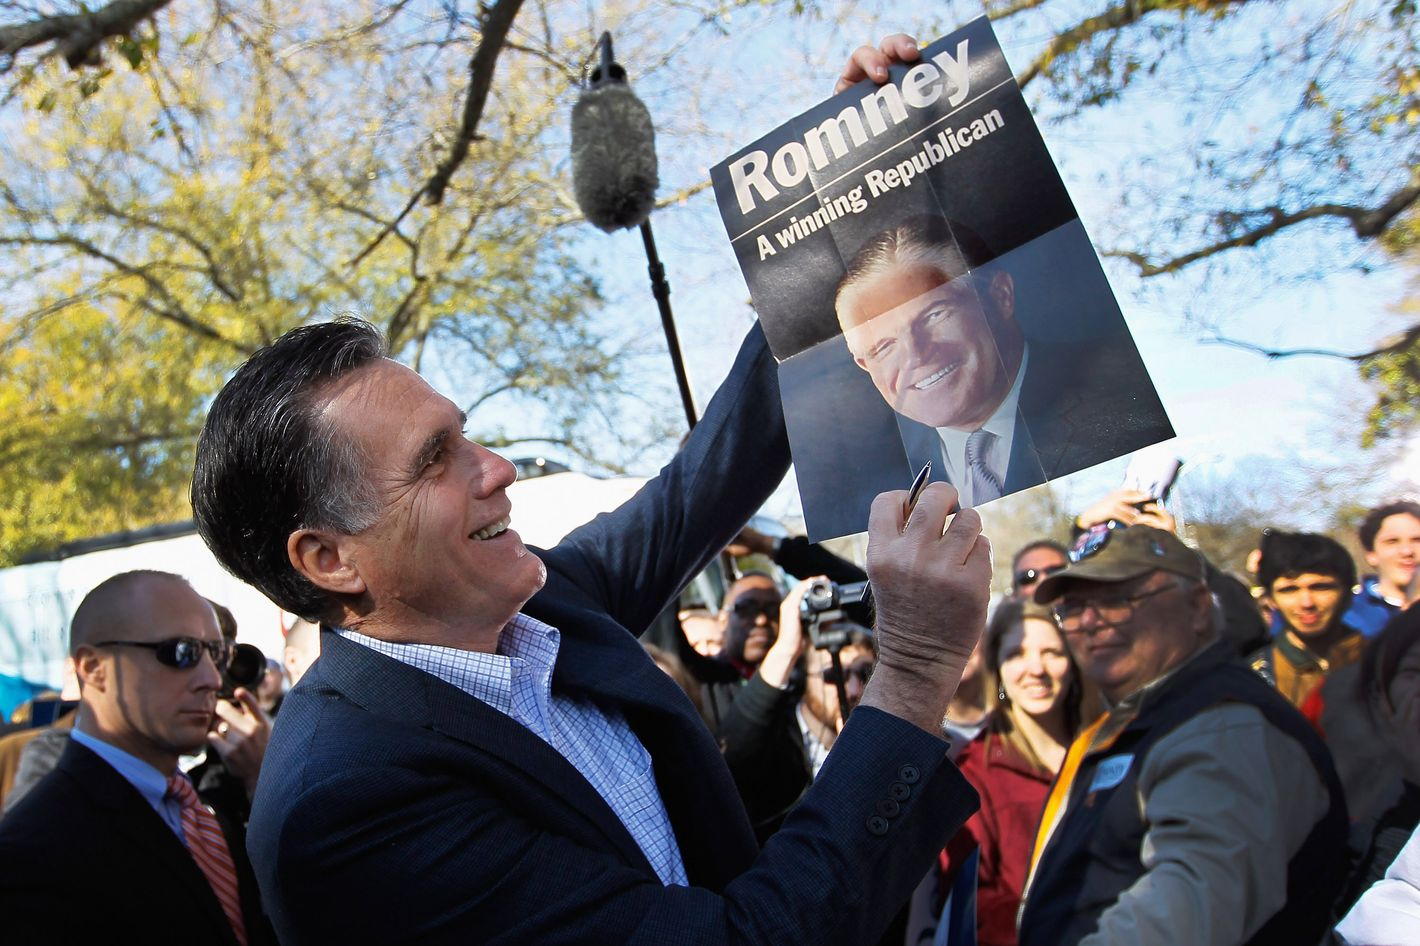 SPARTANBURG, SC - JANUARY 18: Republican presidential candidate and former Massachusetts Gov. Mitt Romney holds up a poster of his father, George Romney, who was the former governor of Michigan, after it was given to him while greeting people at a campaign rally at Wofford College on January 18, 2012 in Spartanburg, South Carolina. Romney continues to campaign for votes in South Carolina ahead of their primary on January 21.  (Photo by Joe Raedle/Getty Images)